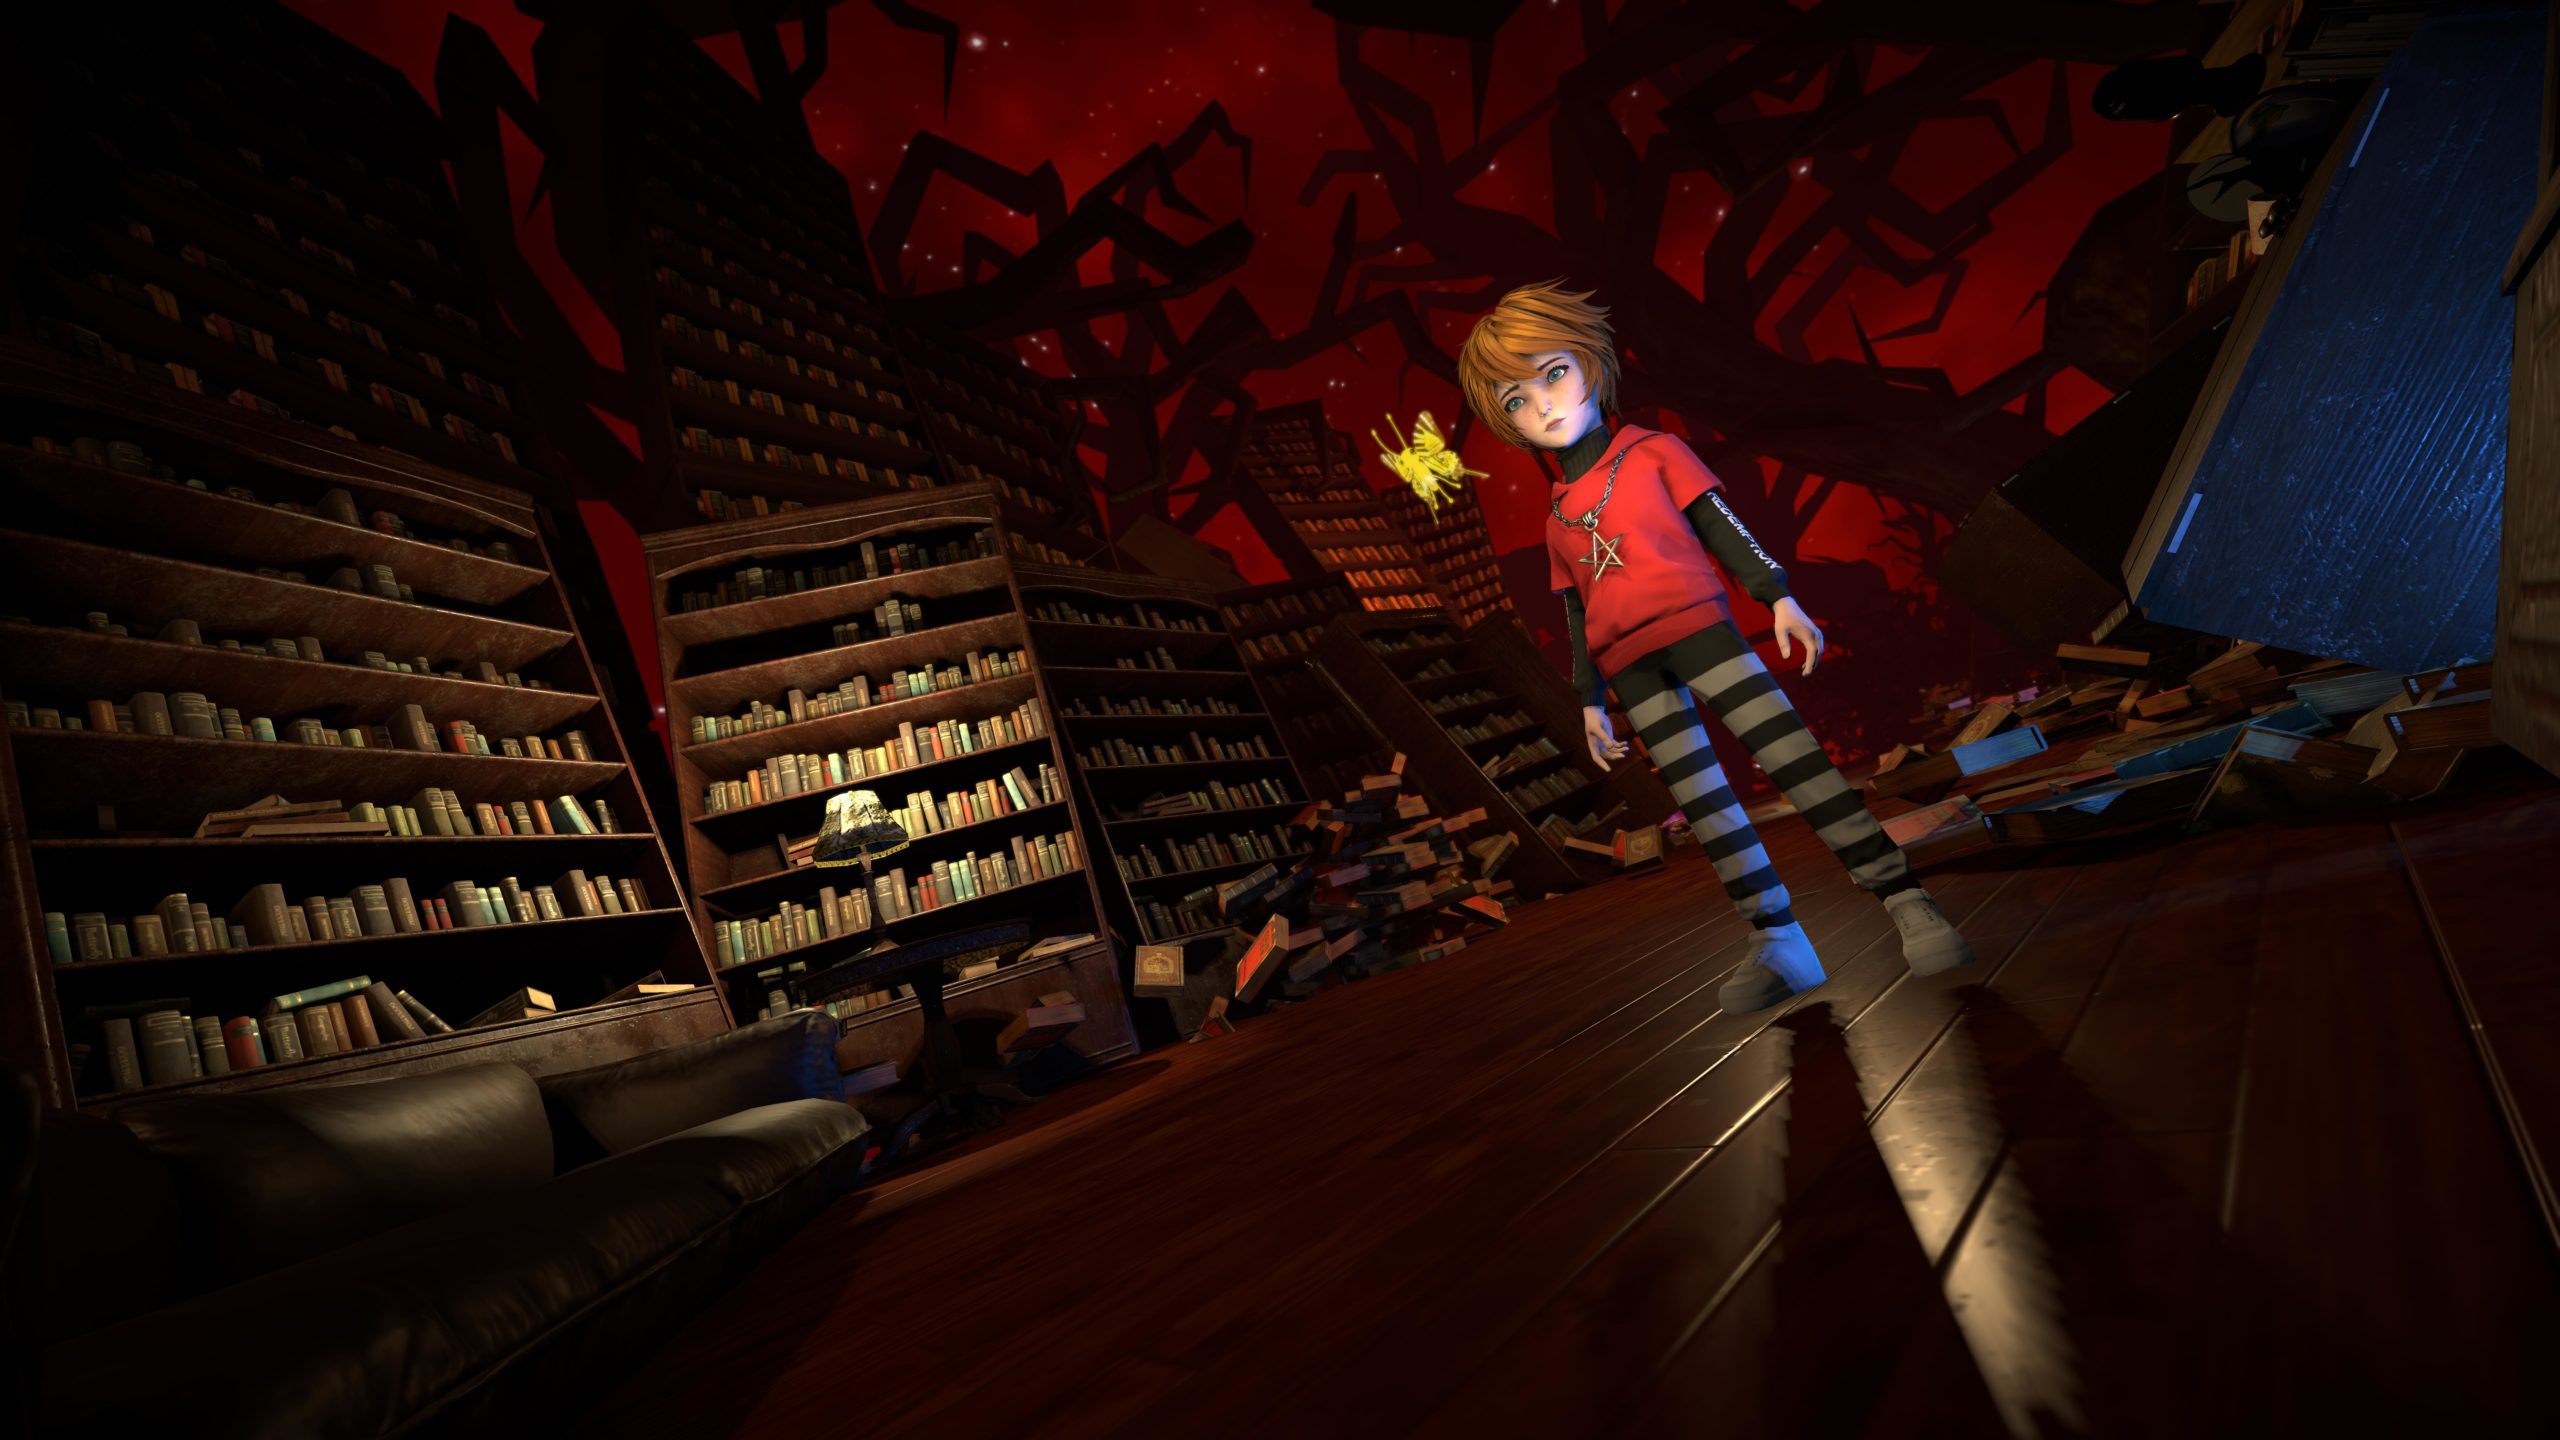 In Nightmare: Exclusive Horror Game Coming Soon to PS4